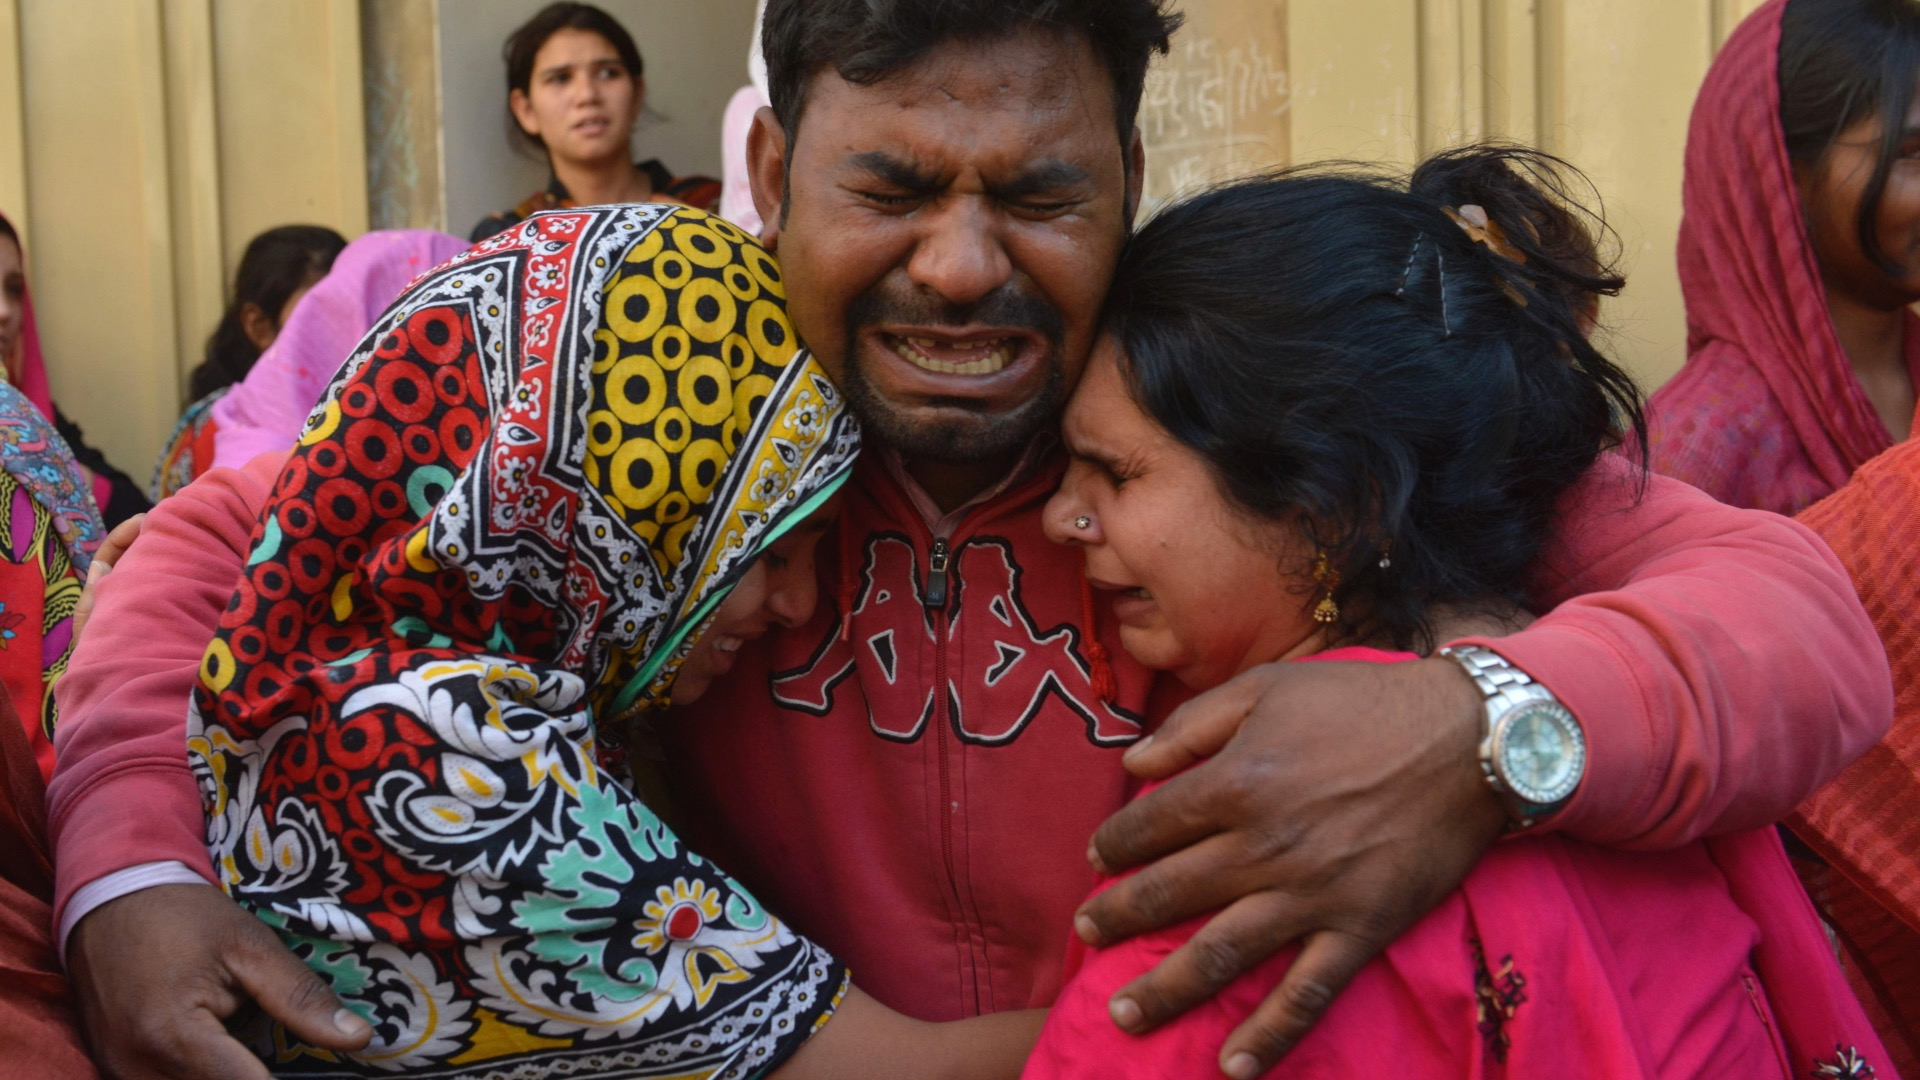 Death toll in Pakistan bombing climbs past 70